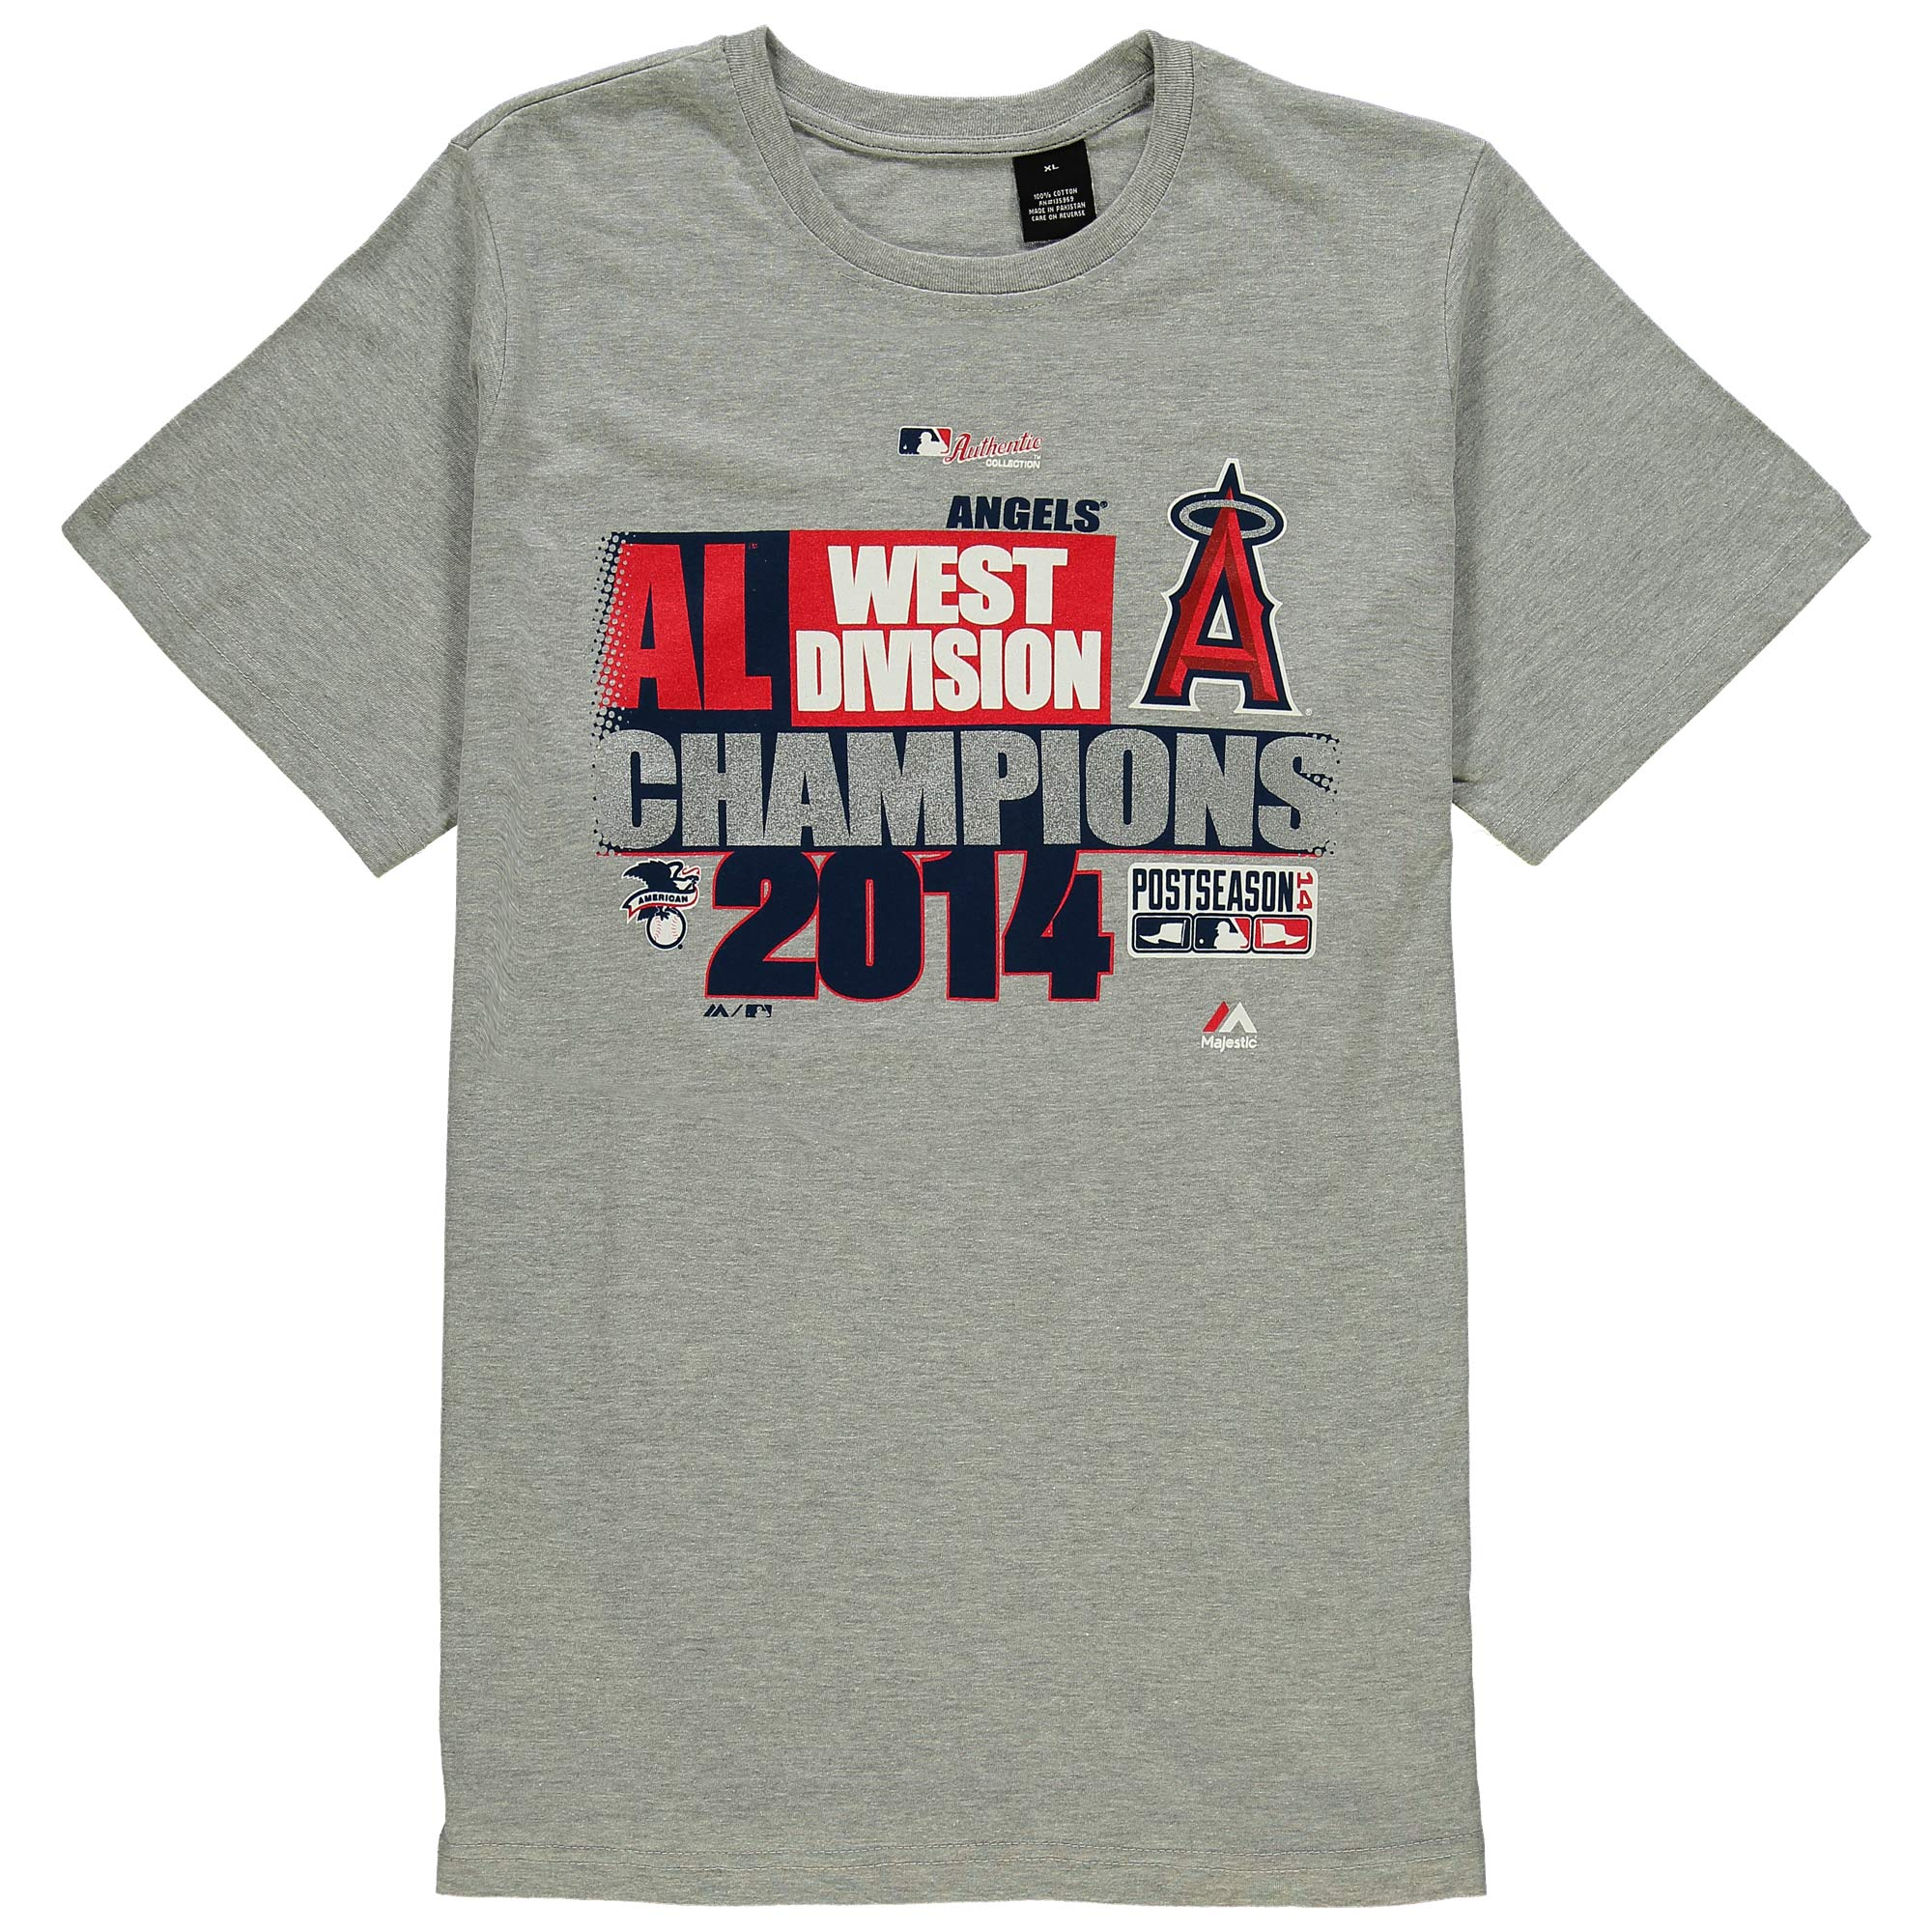 Los Angeles Angels Majestic Women's Plus Size 2014 Divison Champions T-Shirt - Heathered Gray